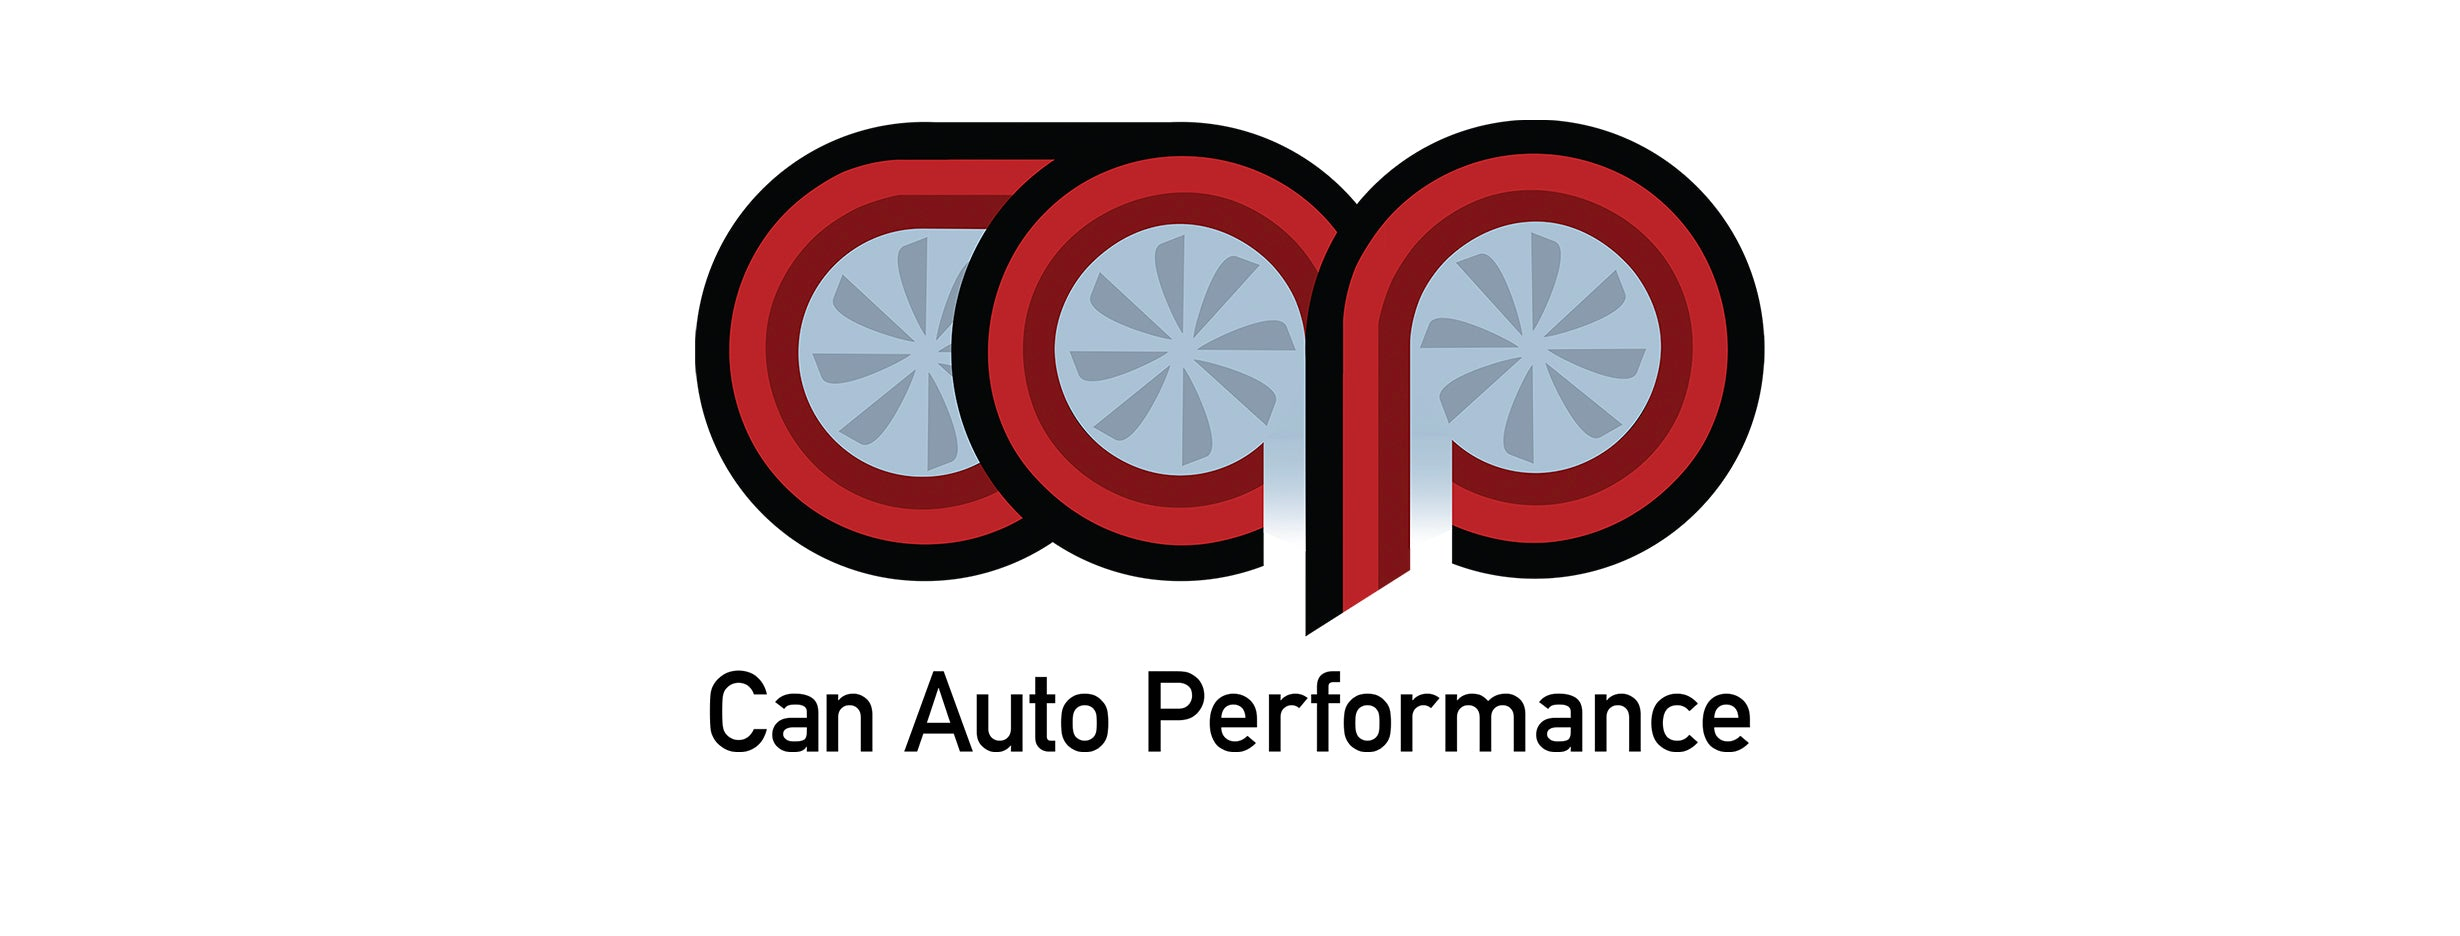 Can Auto Performance Logo